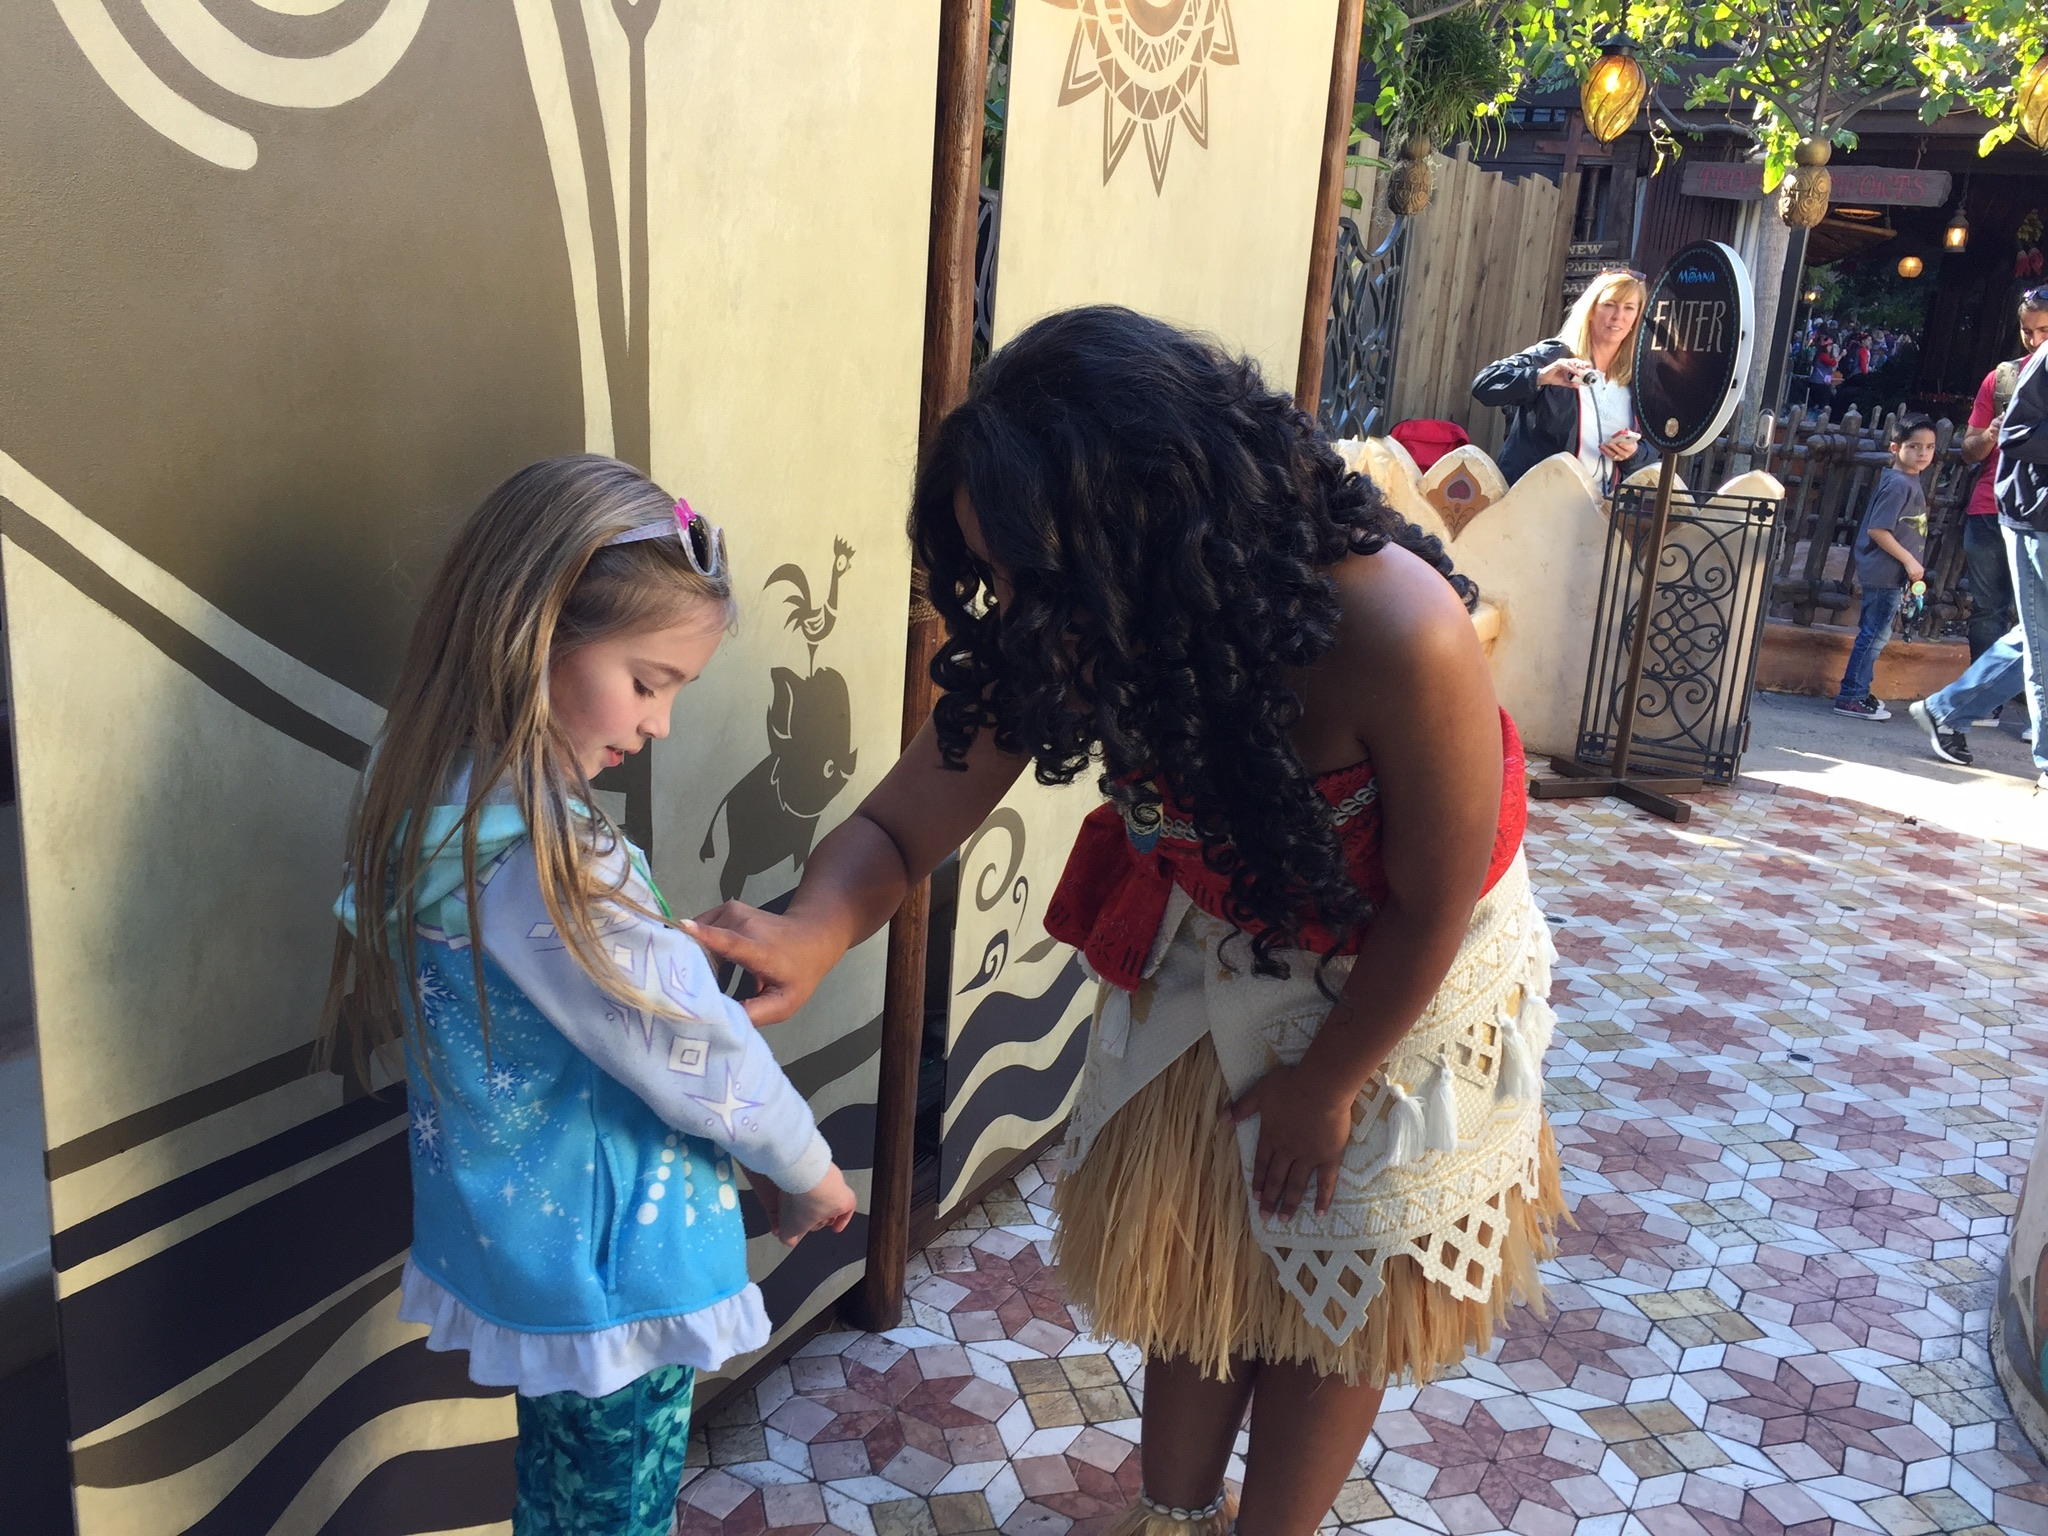 Meeting moana at disneyland tips from the disney divas and devos meeting moana at disneyland m4hsunfo